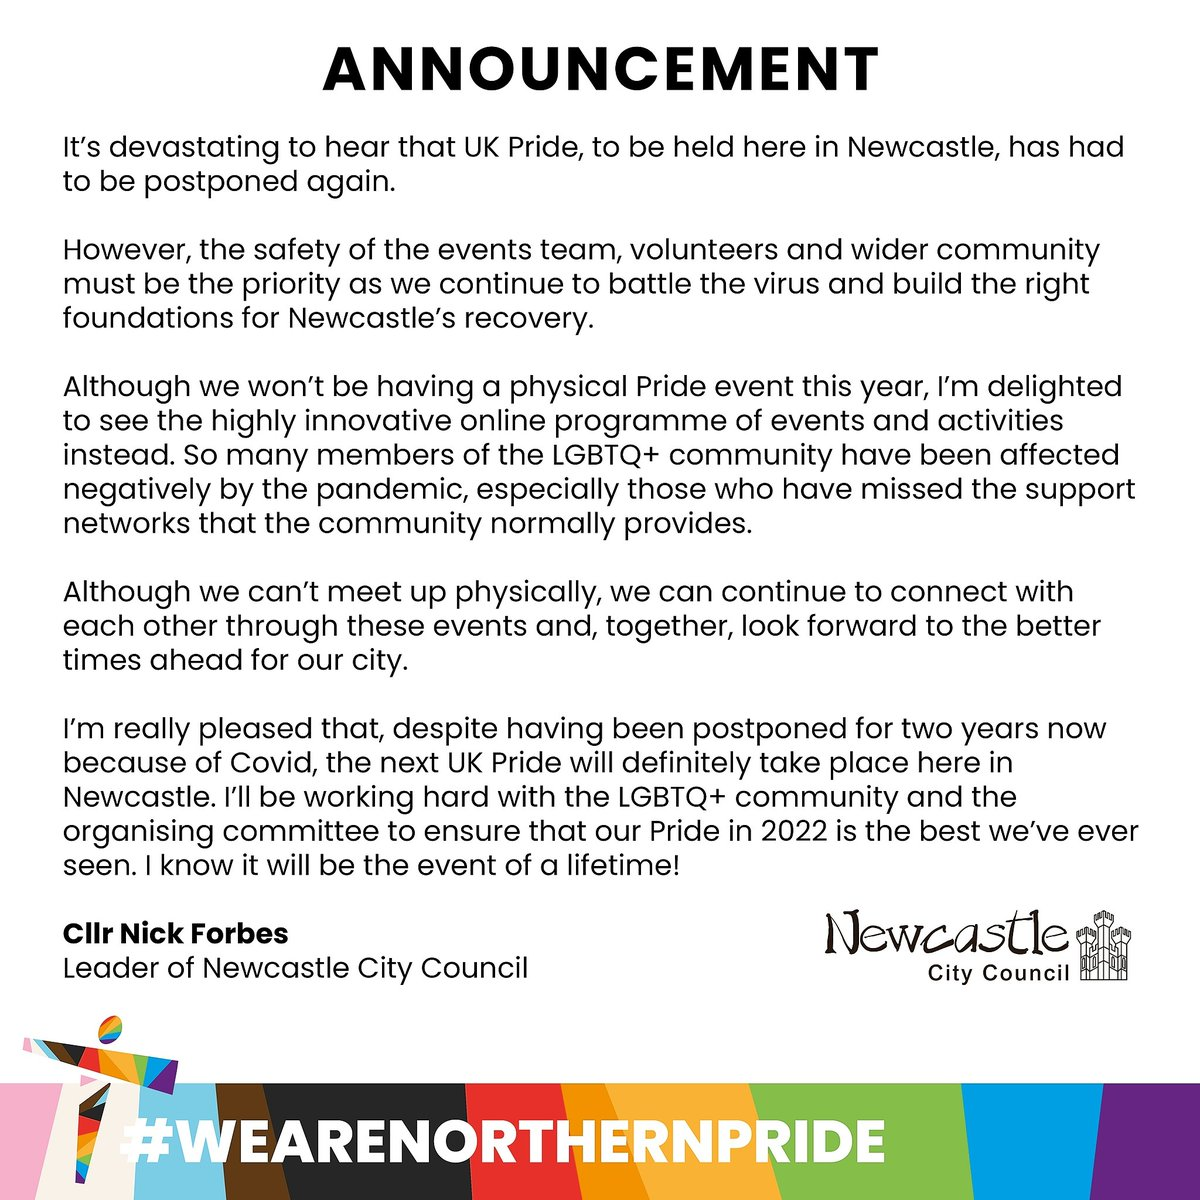 This years Pride festival will be a virtual celebration kicking off on 24 July. The safety of everyone involved is vitally important and the uncertainty around mass events means this years plans have changed. UK Pride status will roll over until 2022. orlo.uk/My66c